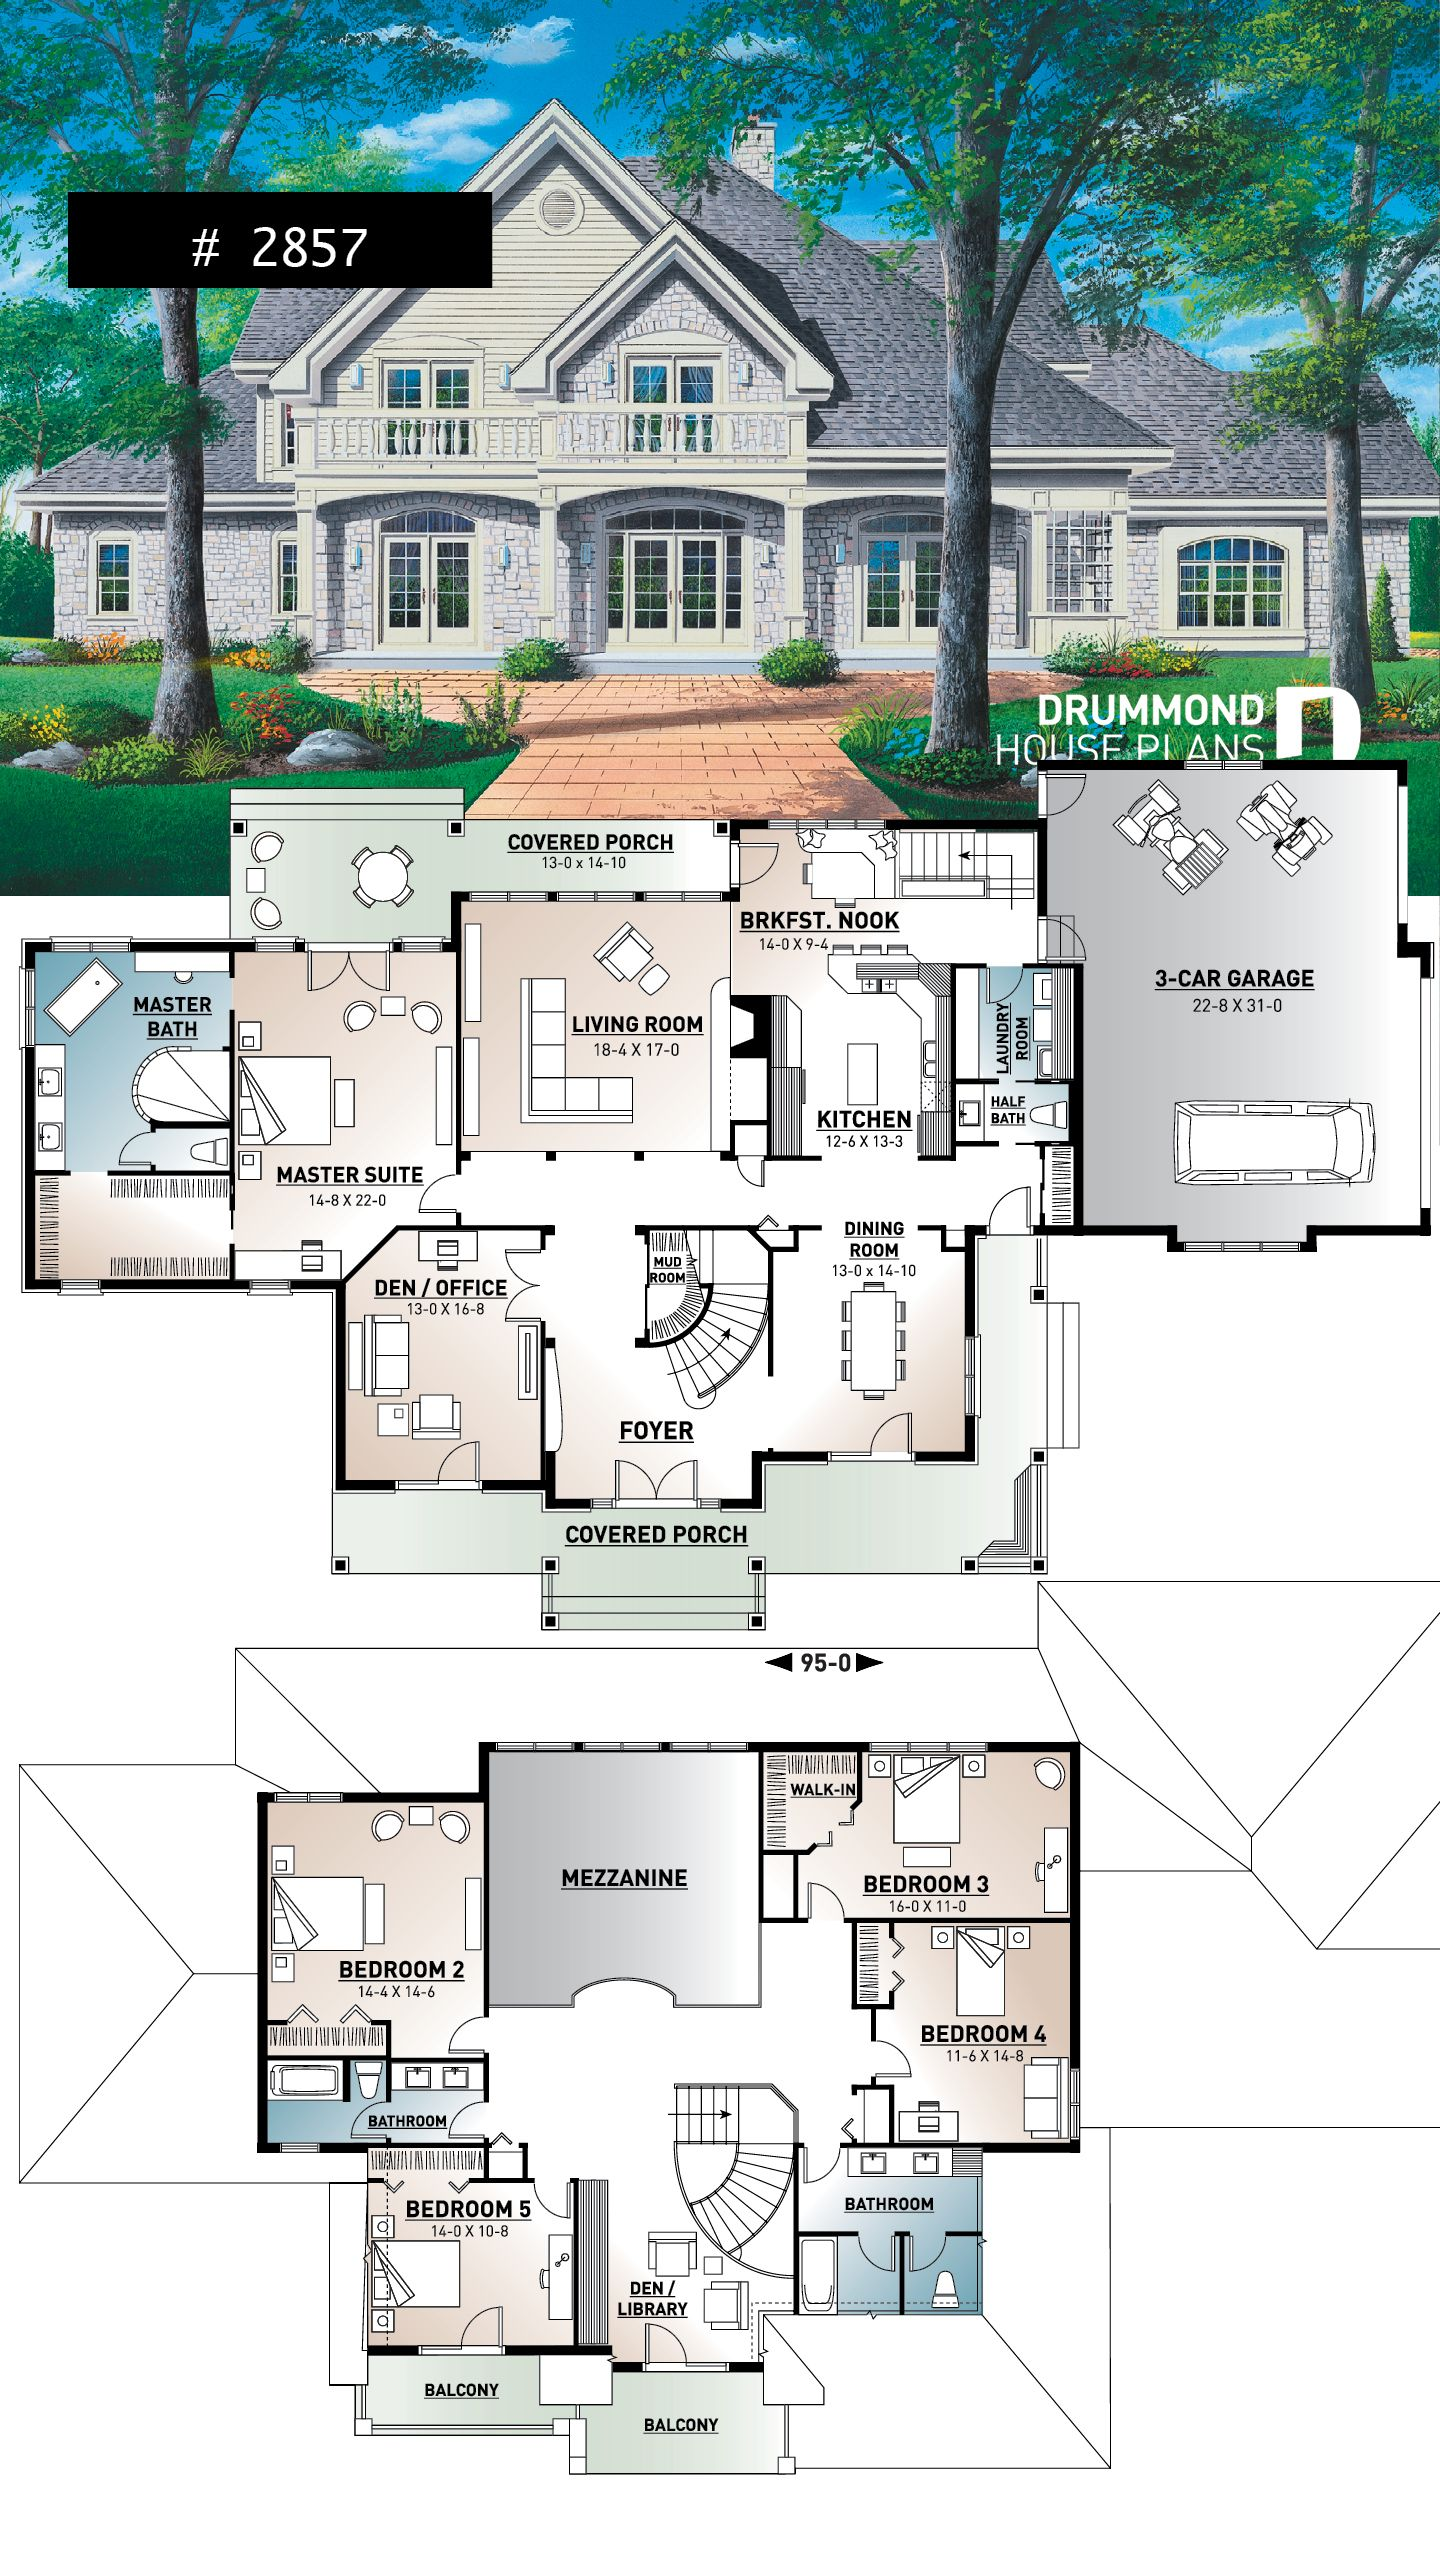 5 bed 3 5 bath 3 car garage house plan formal dining & living room large master main floor wi